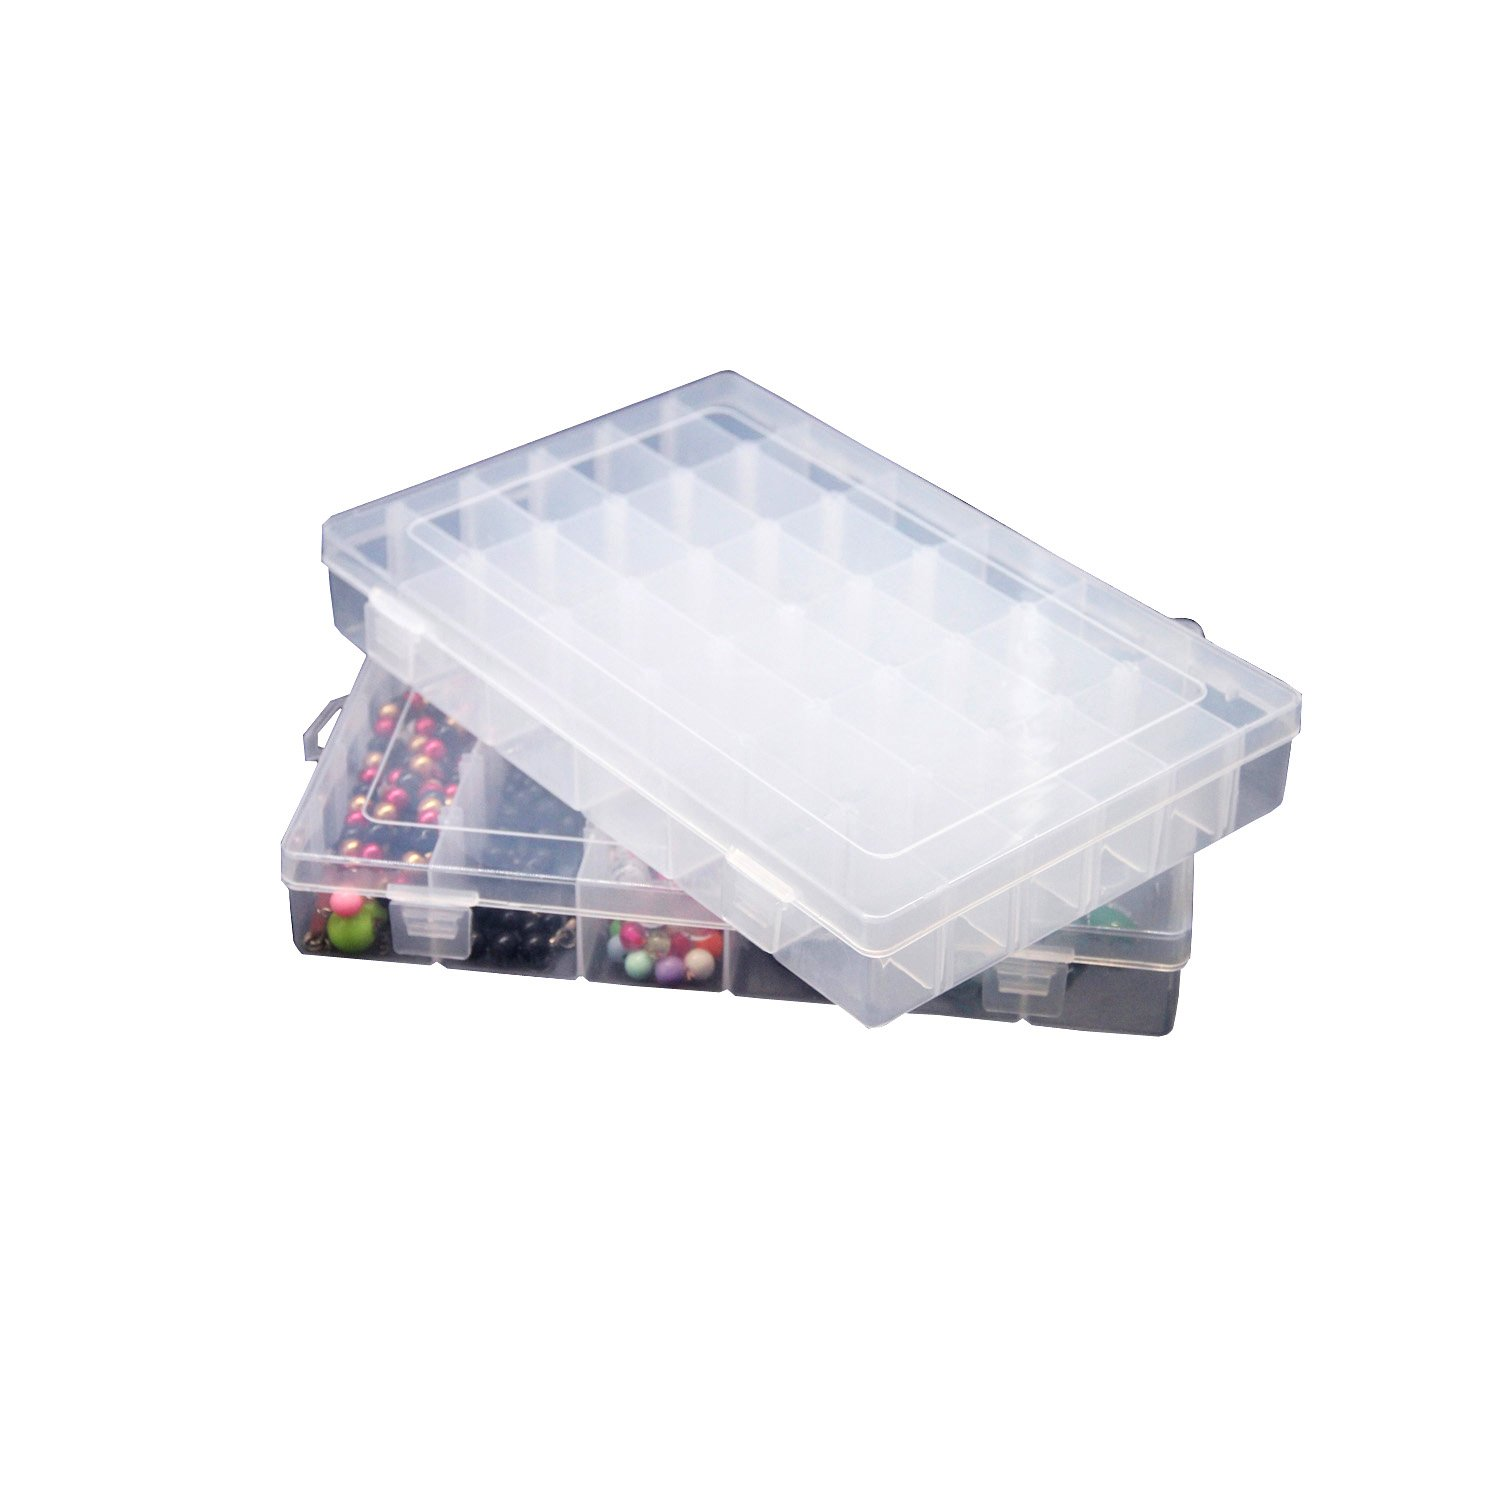 2Pcs Clear Plastic Jewelry Box Organizers 36 Grids with Adjustable Dividers for Beads Earrings Necklaces Rings Metal Parts Accessories Screws Button Storage Box Container Shine